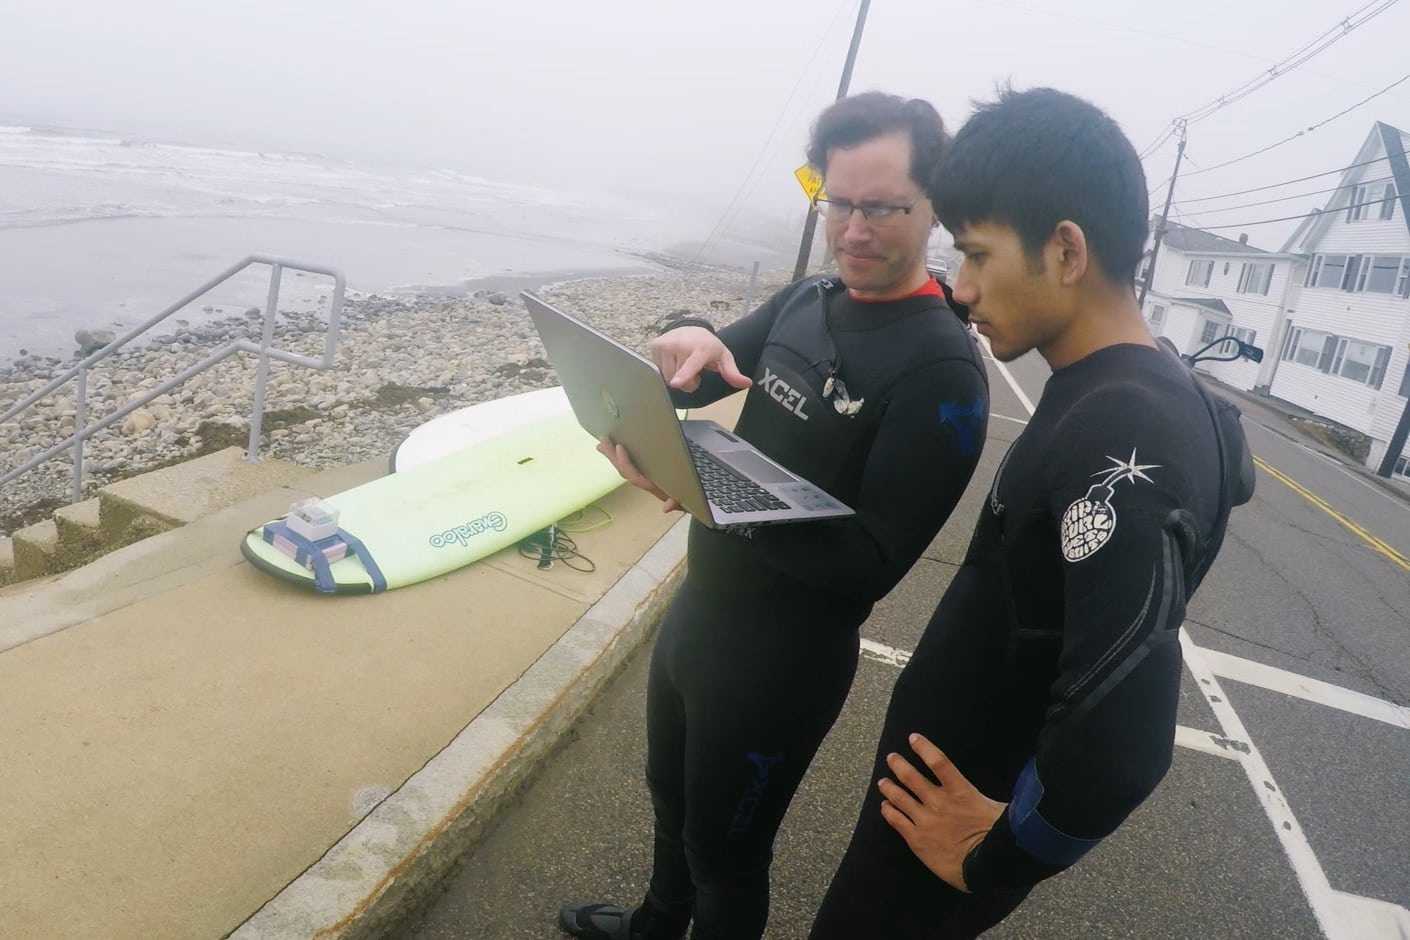 Josh and Puspa stand near the beach with a laptop, analyzing the data from their surfboard tracker, senior project